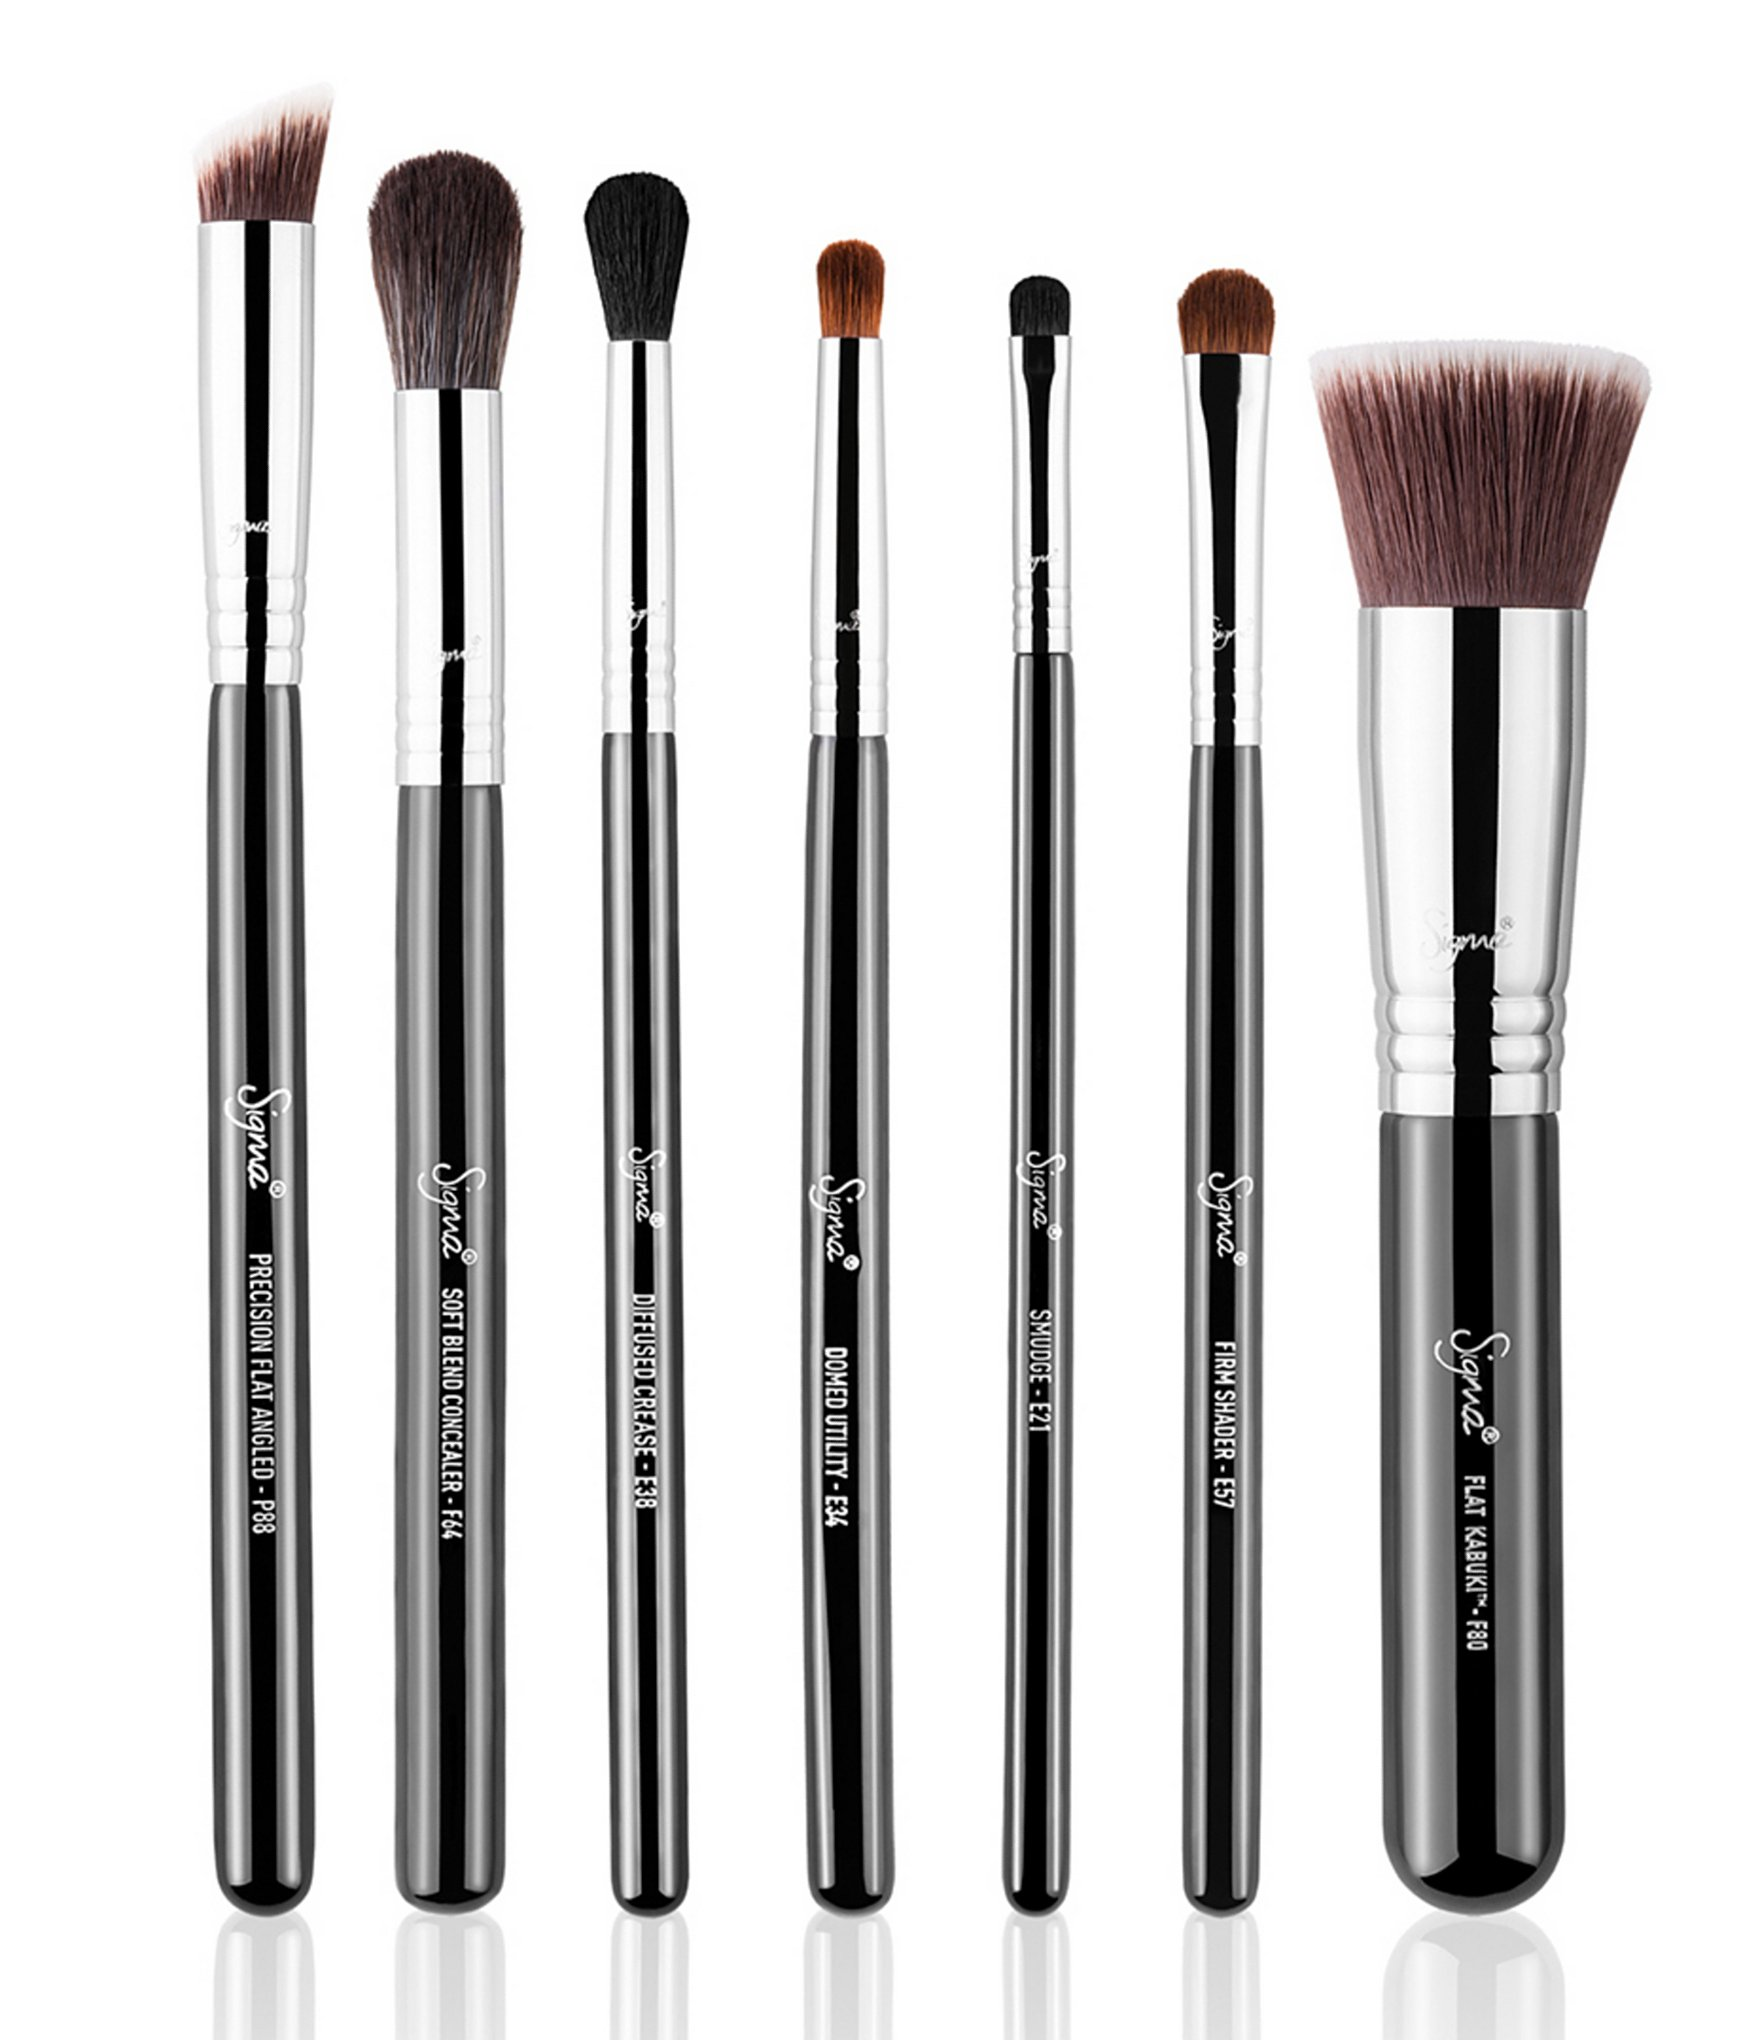 sigma brushes